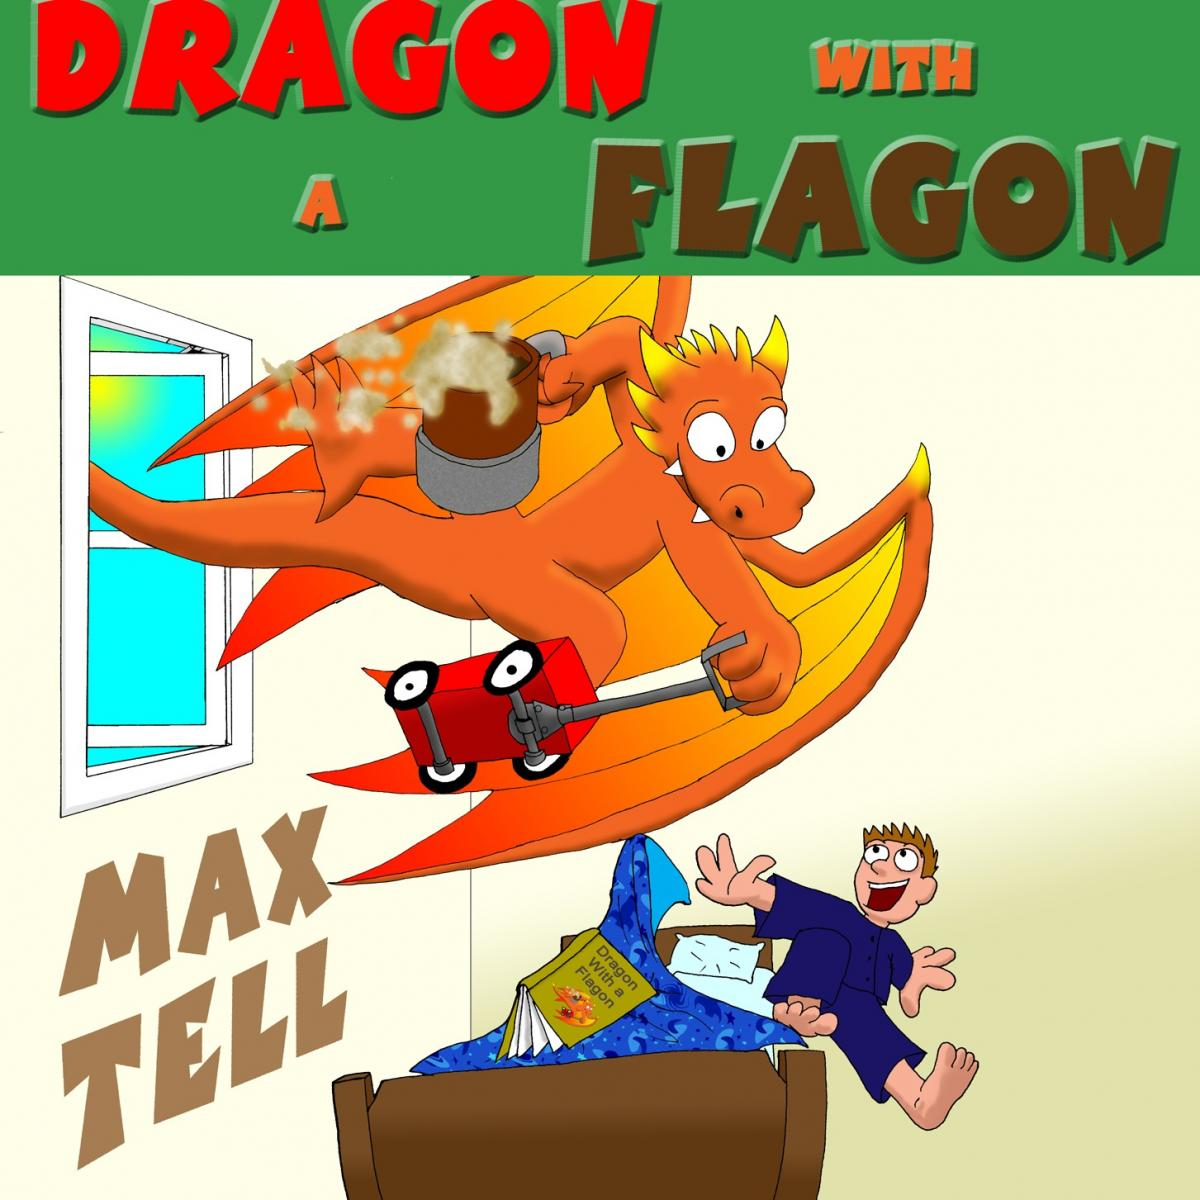 Dragon with a Flagon Review